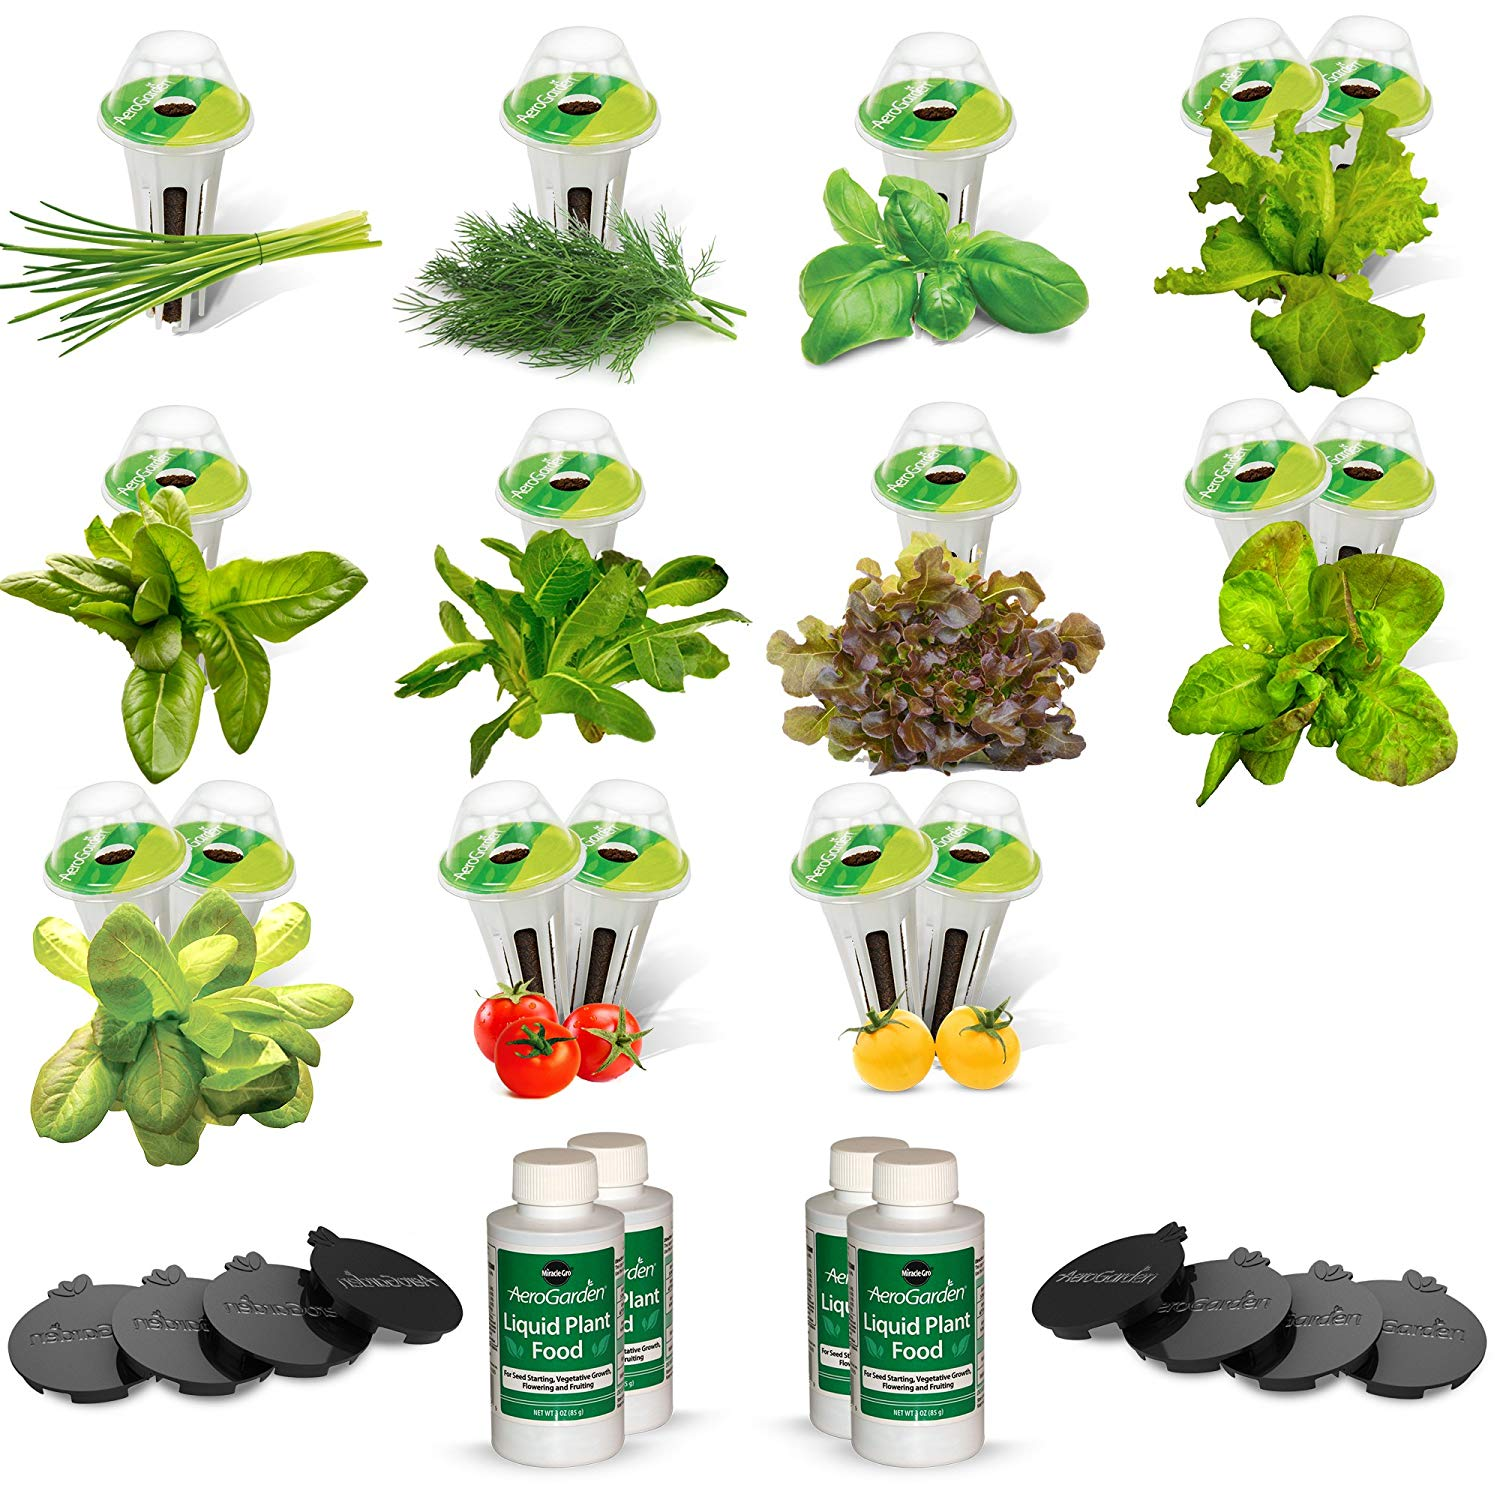 AeroGarden Salad Bar Mix Seed Pod Kit 24